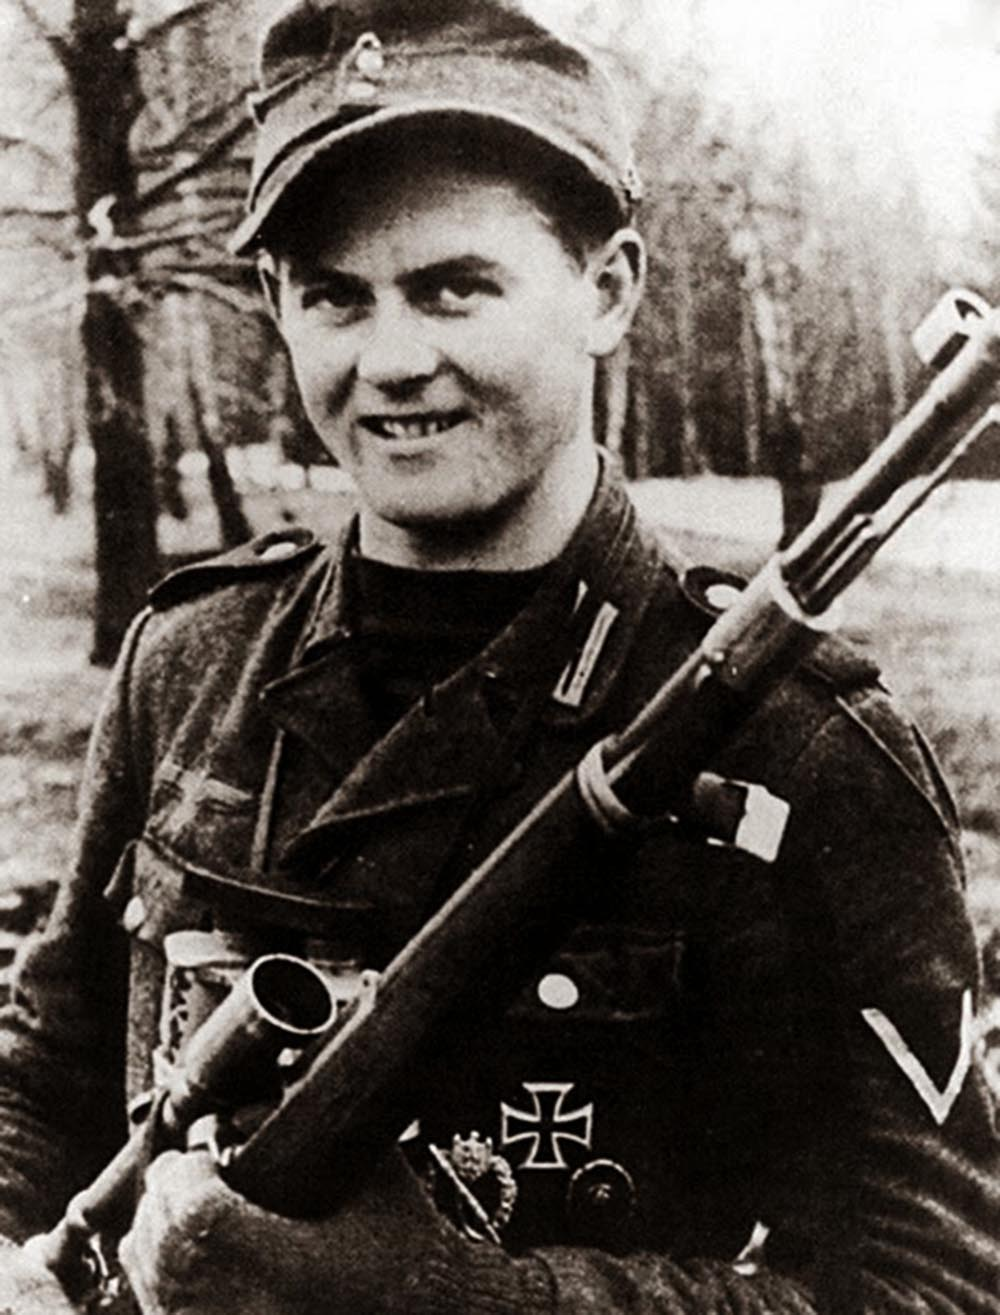 Matthäus Hetzenauer, Austrian sniper with 345 confirmed kills, 1944.